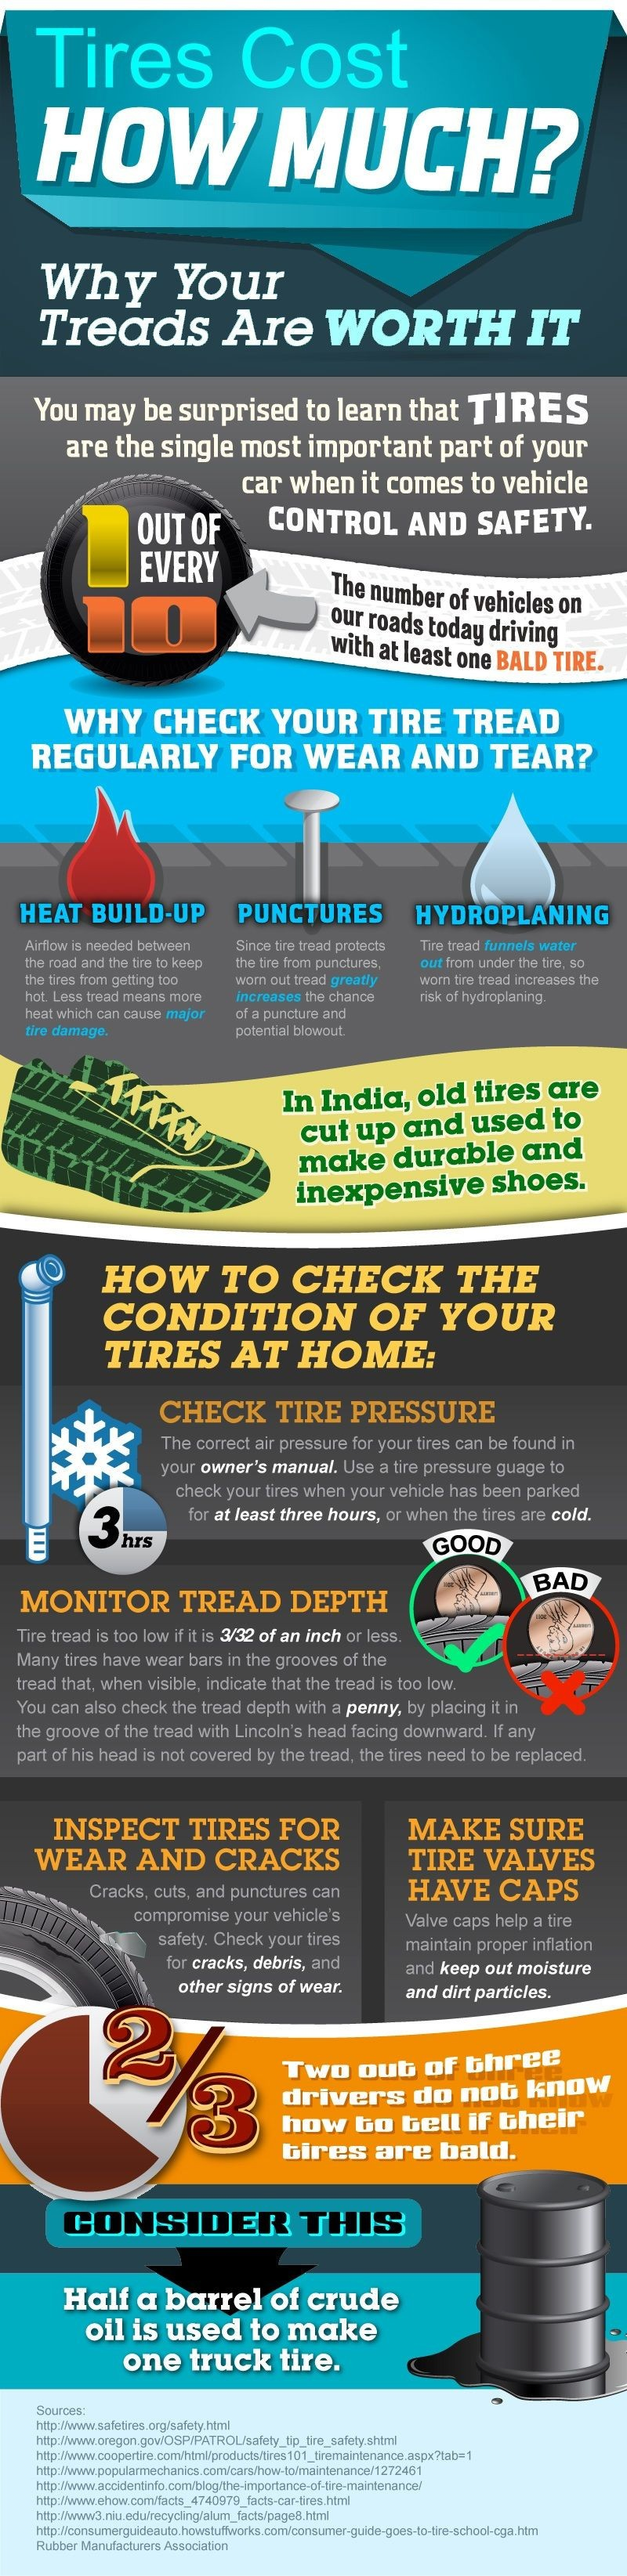 Tire Wear and Tear The following infographic poster shows